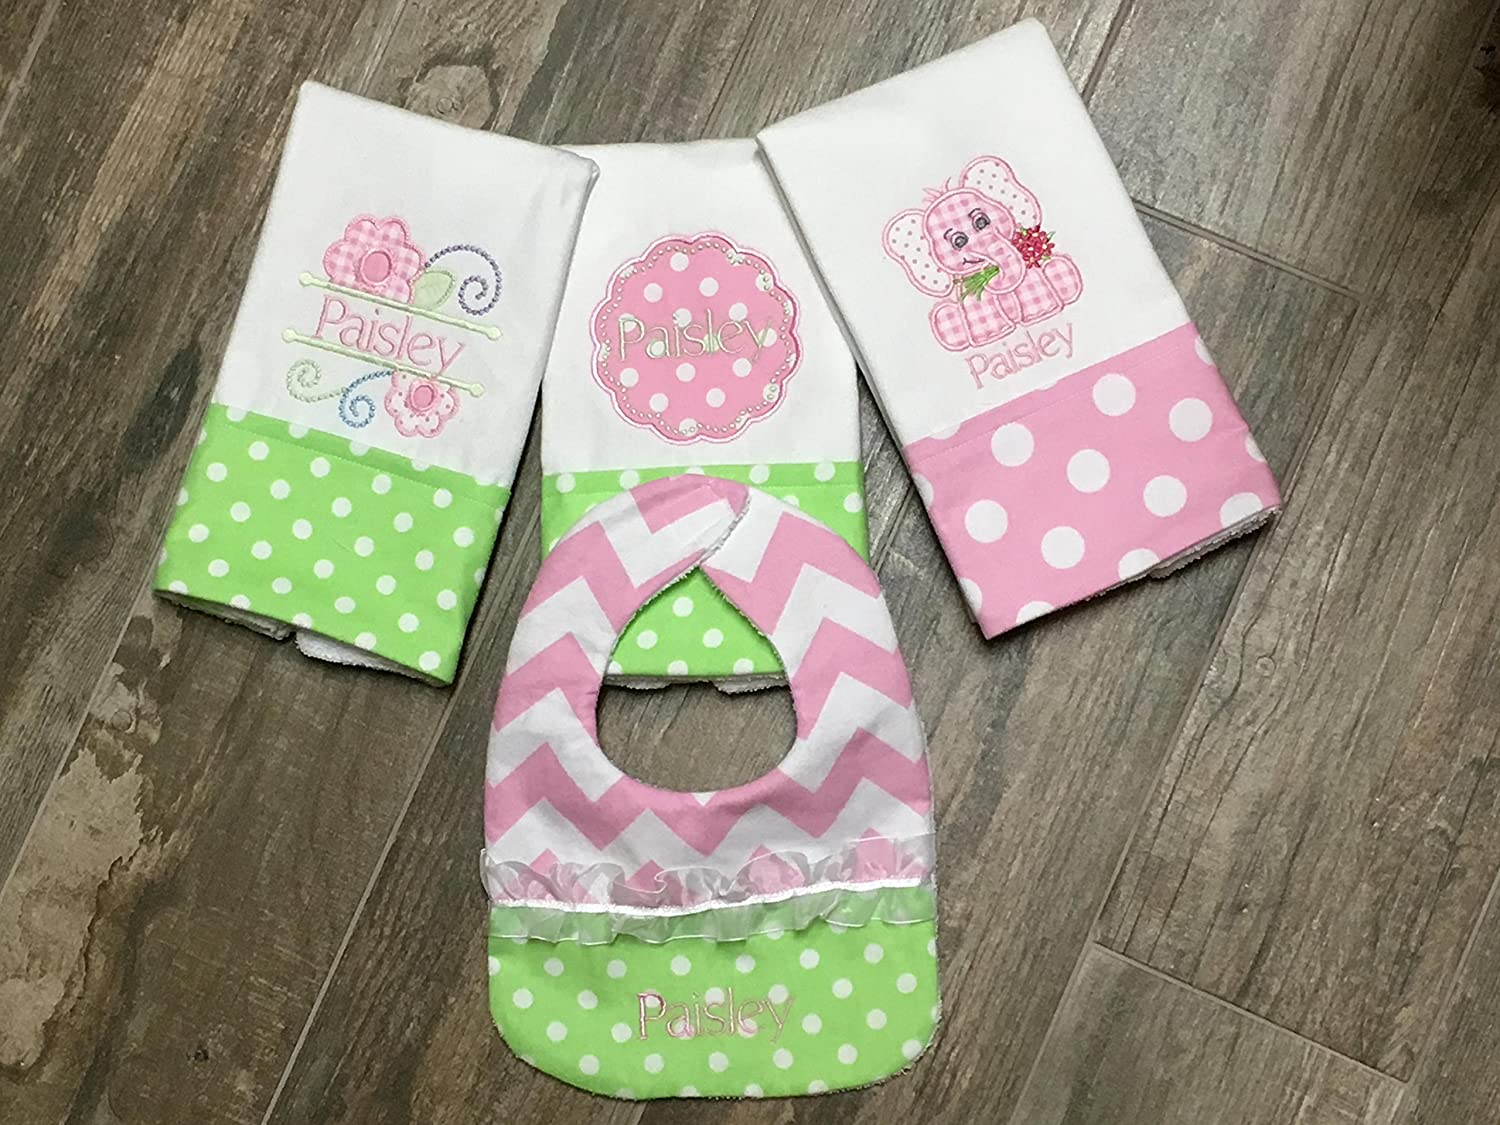 3 Embroidered, Personalized Burp Cloths, Applique Elephant and Floral Pink and Green burp cloths with a matching bib, Boutique Burp Cloth